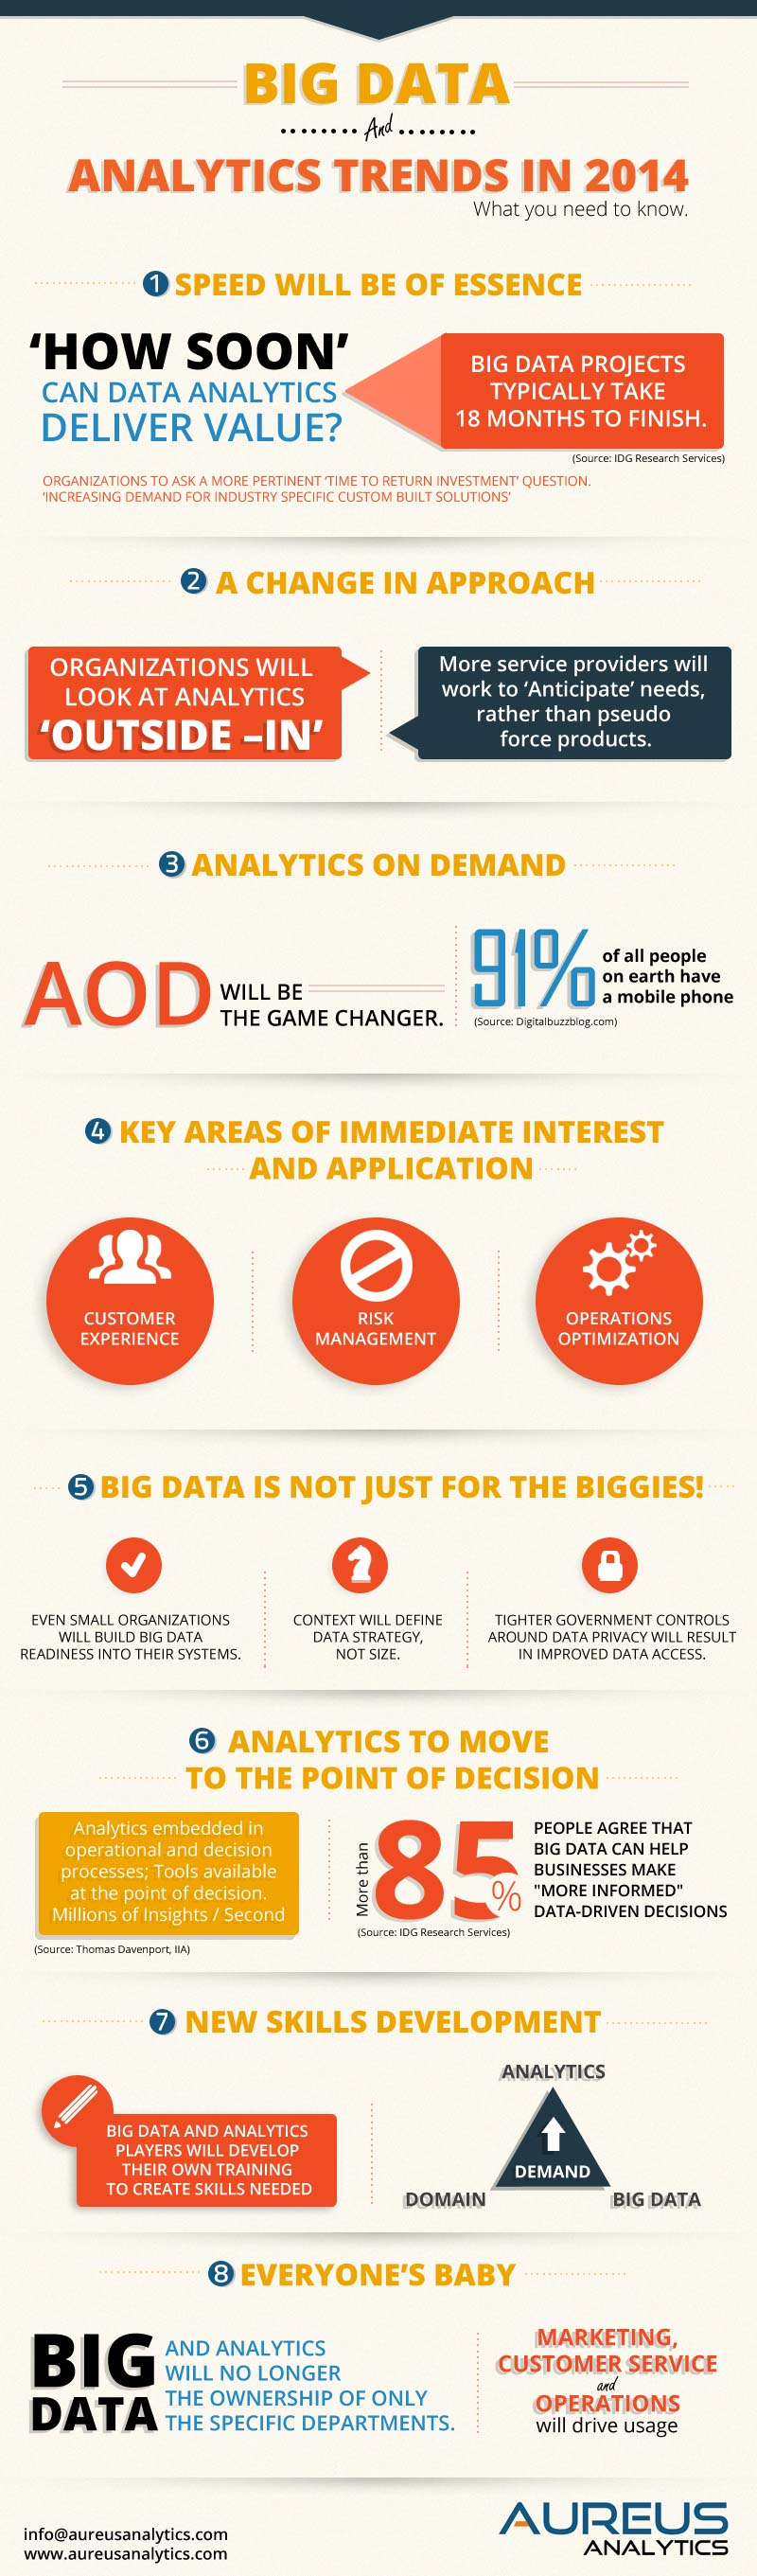 Big Data in 2014-Infographic